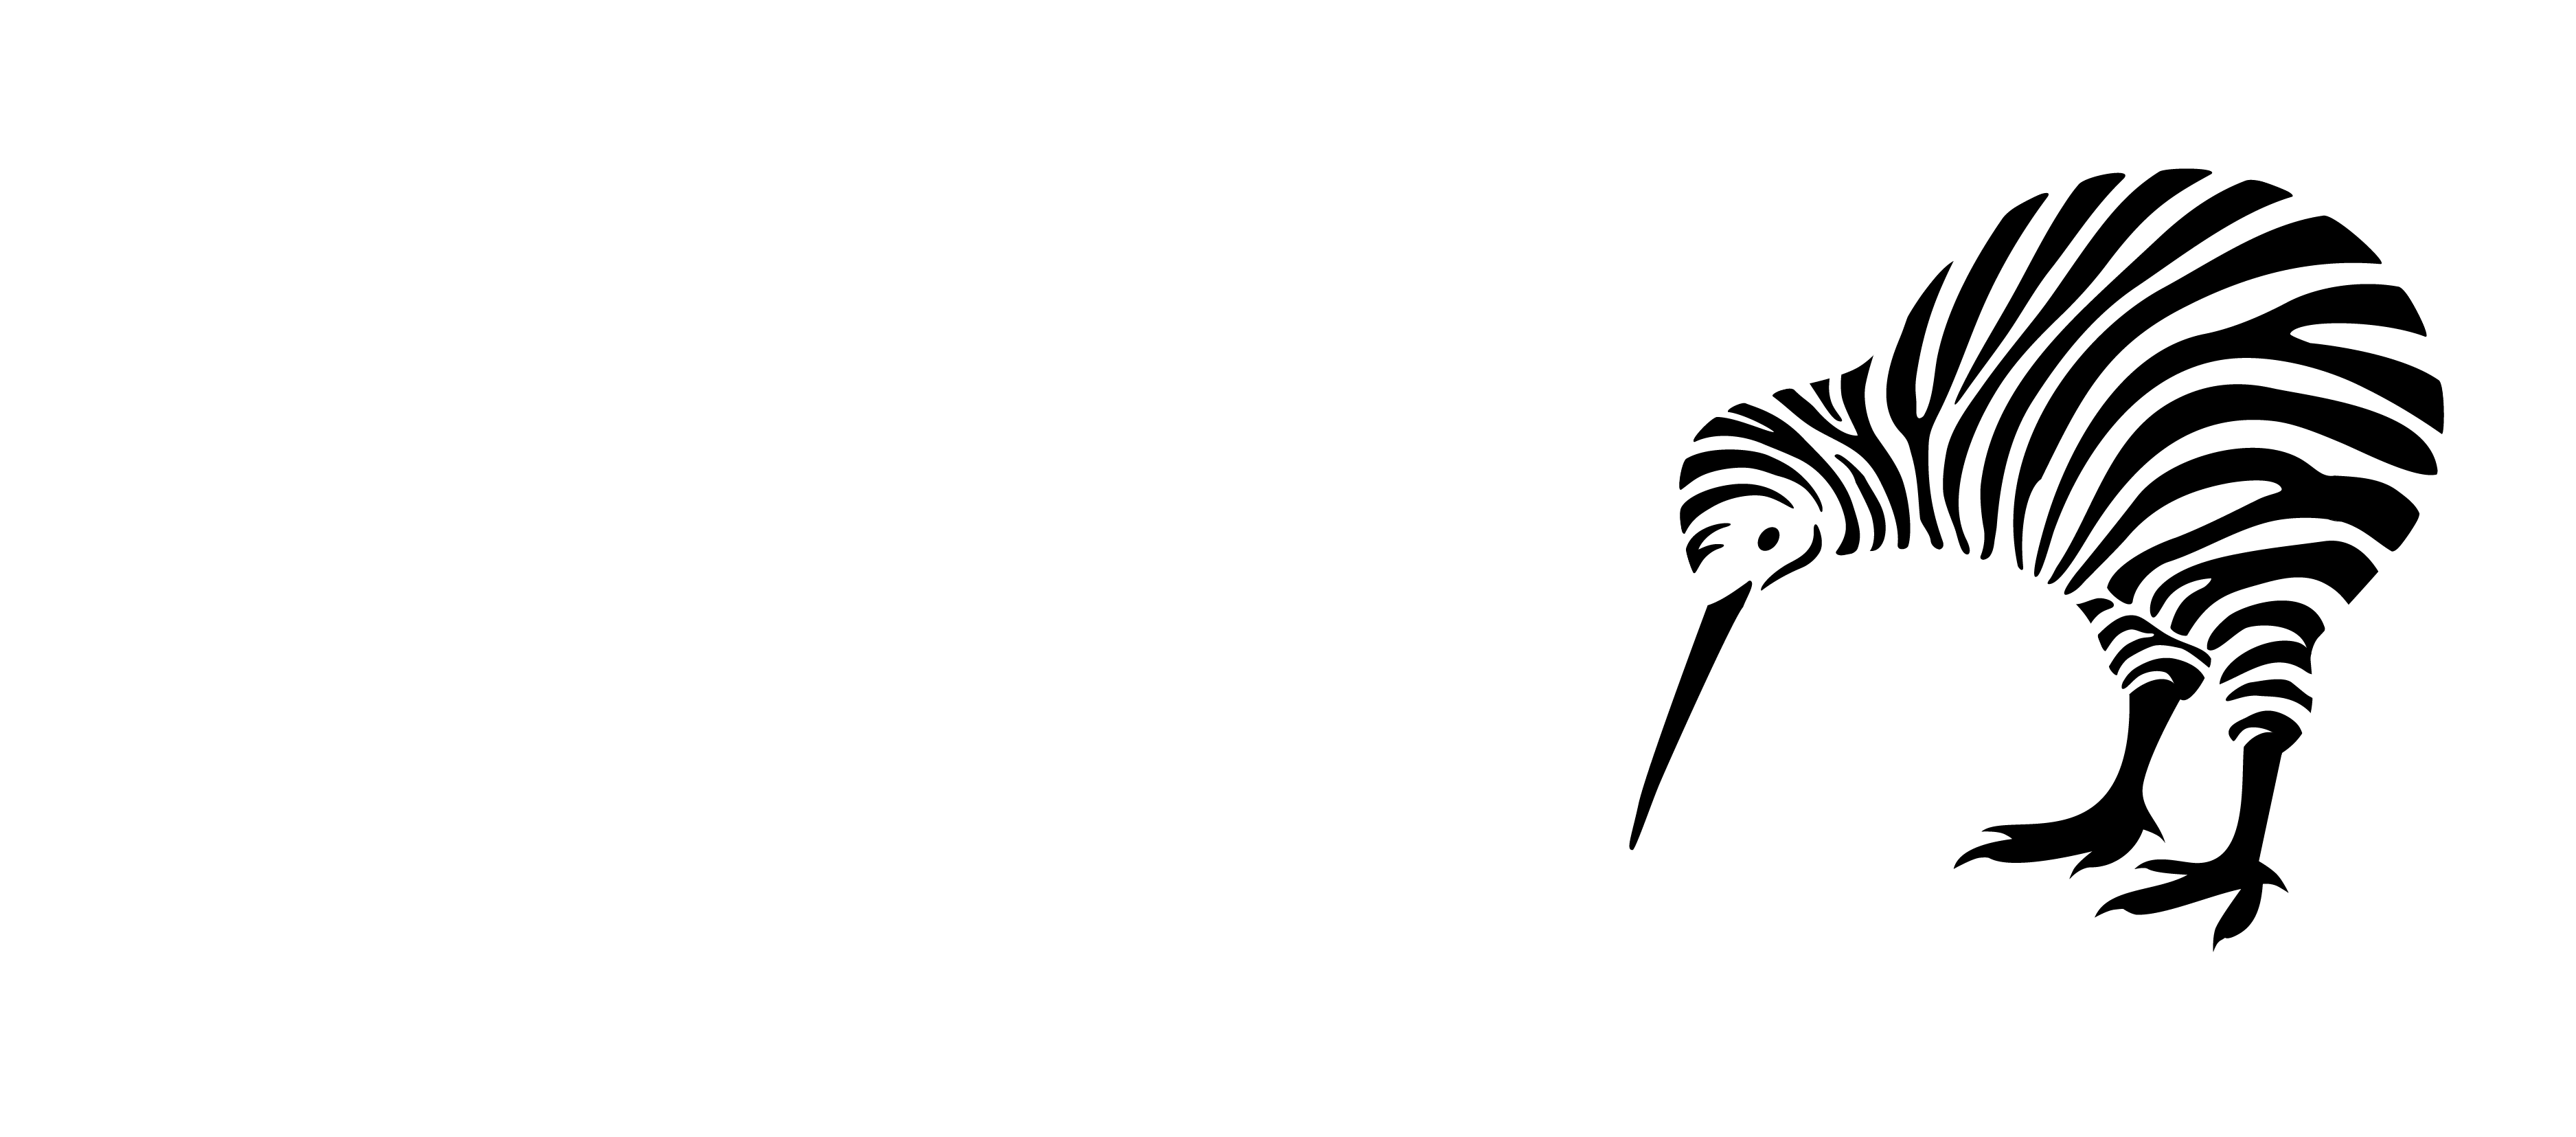 Ehlers Danlos Syndromes New Zealand